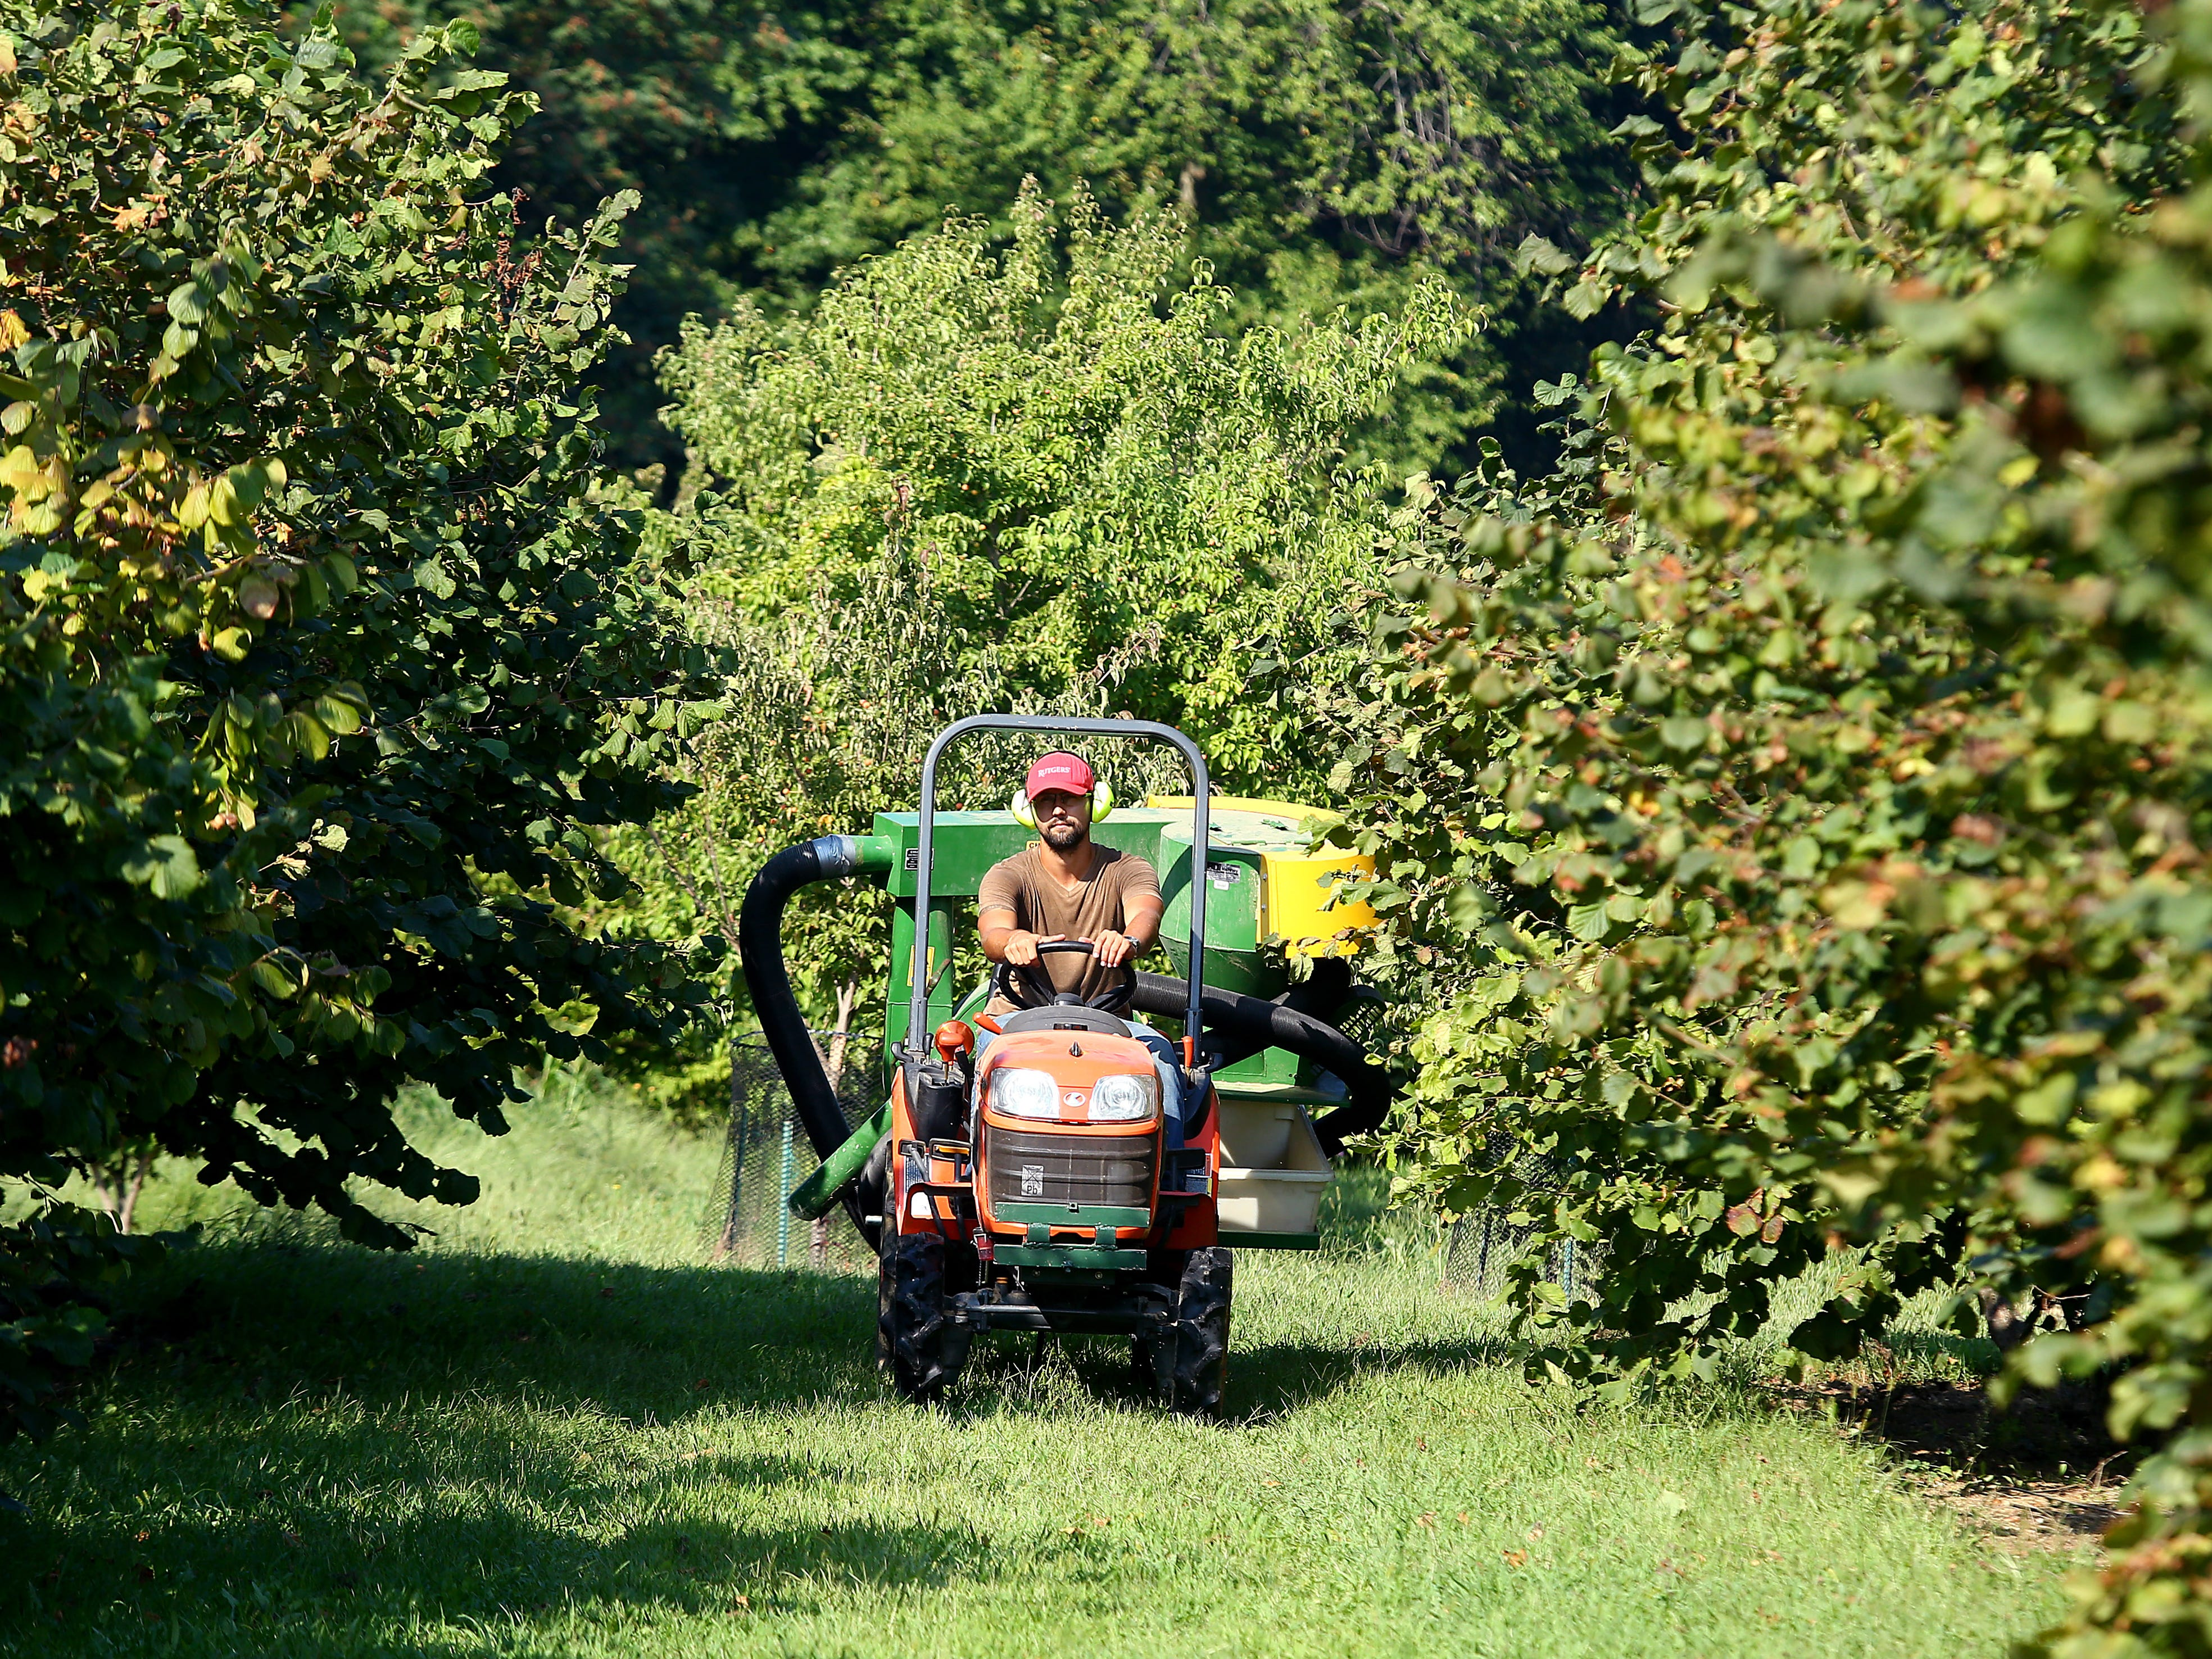 Field Researcher Tech Emil Milan rides a Chianchia hazelnut harvester at Rutgers Hort Farm 3 in East Brunswick. Hazelnuts are currently only produced commercially in the United States in the Willamette Valley of Oregon. However, research and breeding at Rutgers is changing this scenario. September 6, 2018, East Brunswick , NJ